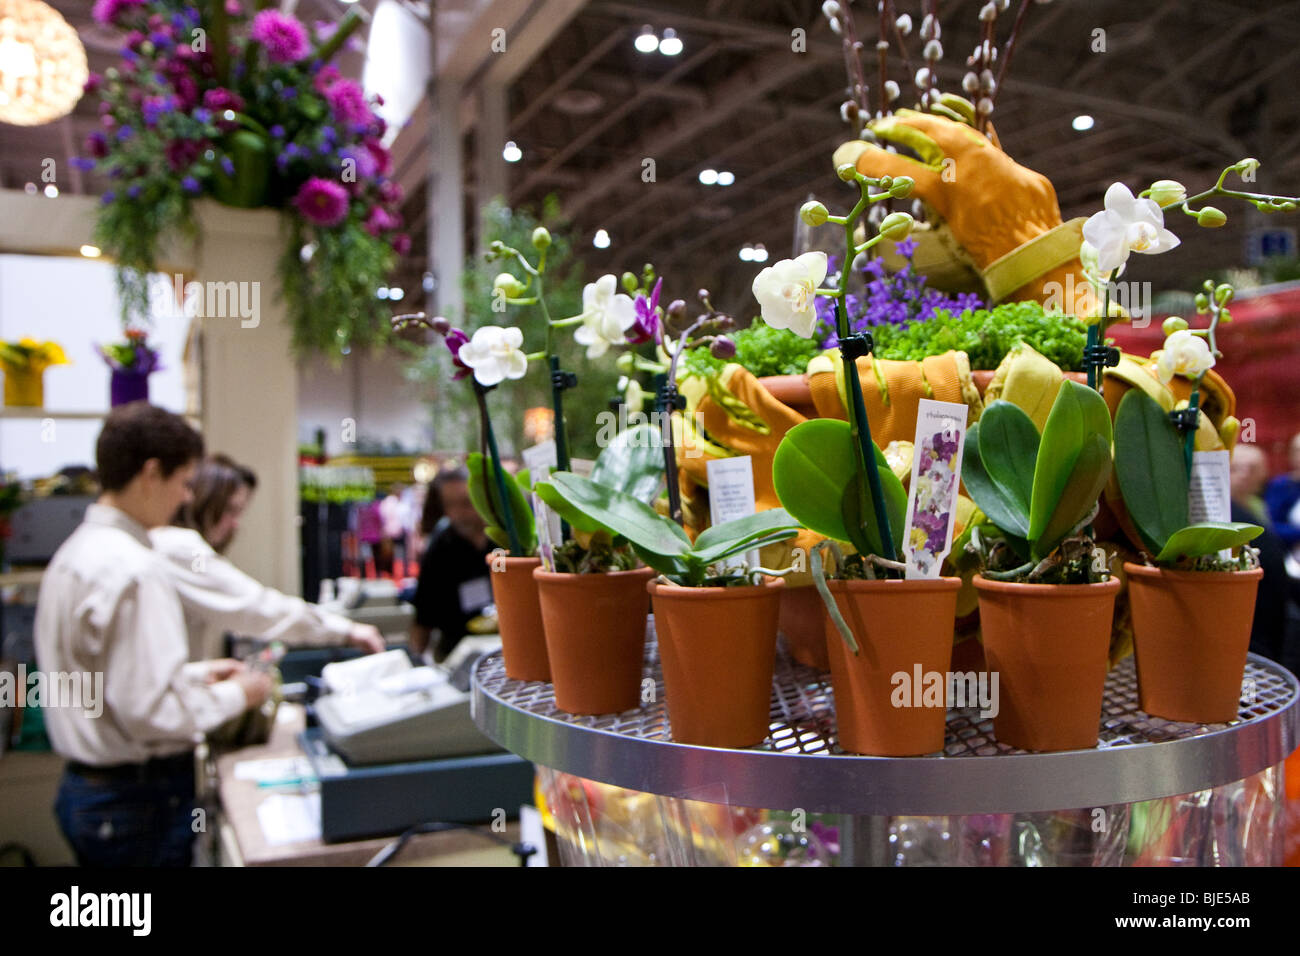 Small Orchid plants on sale at the Canada Blooms gardening and flower show - Stock Image